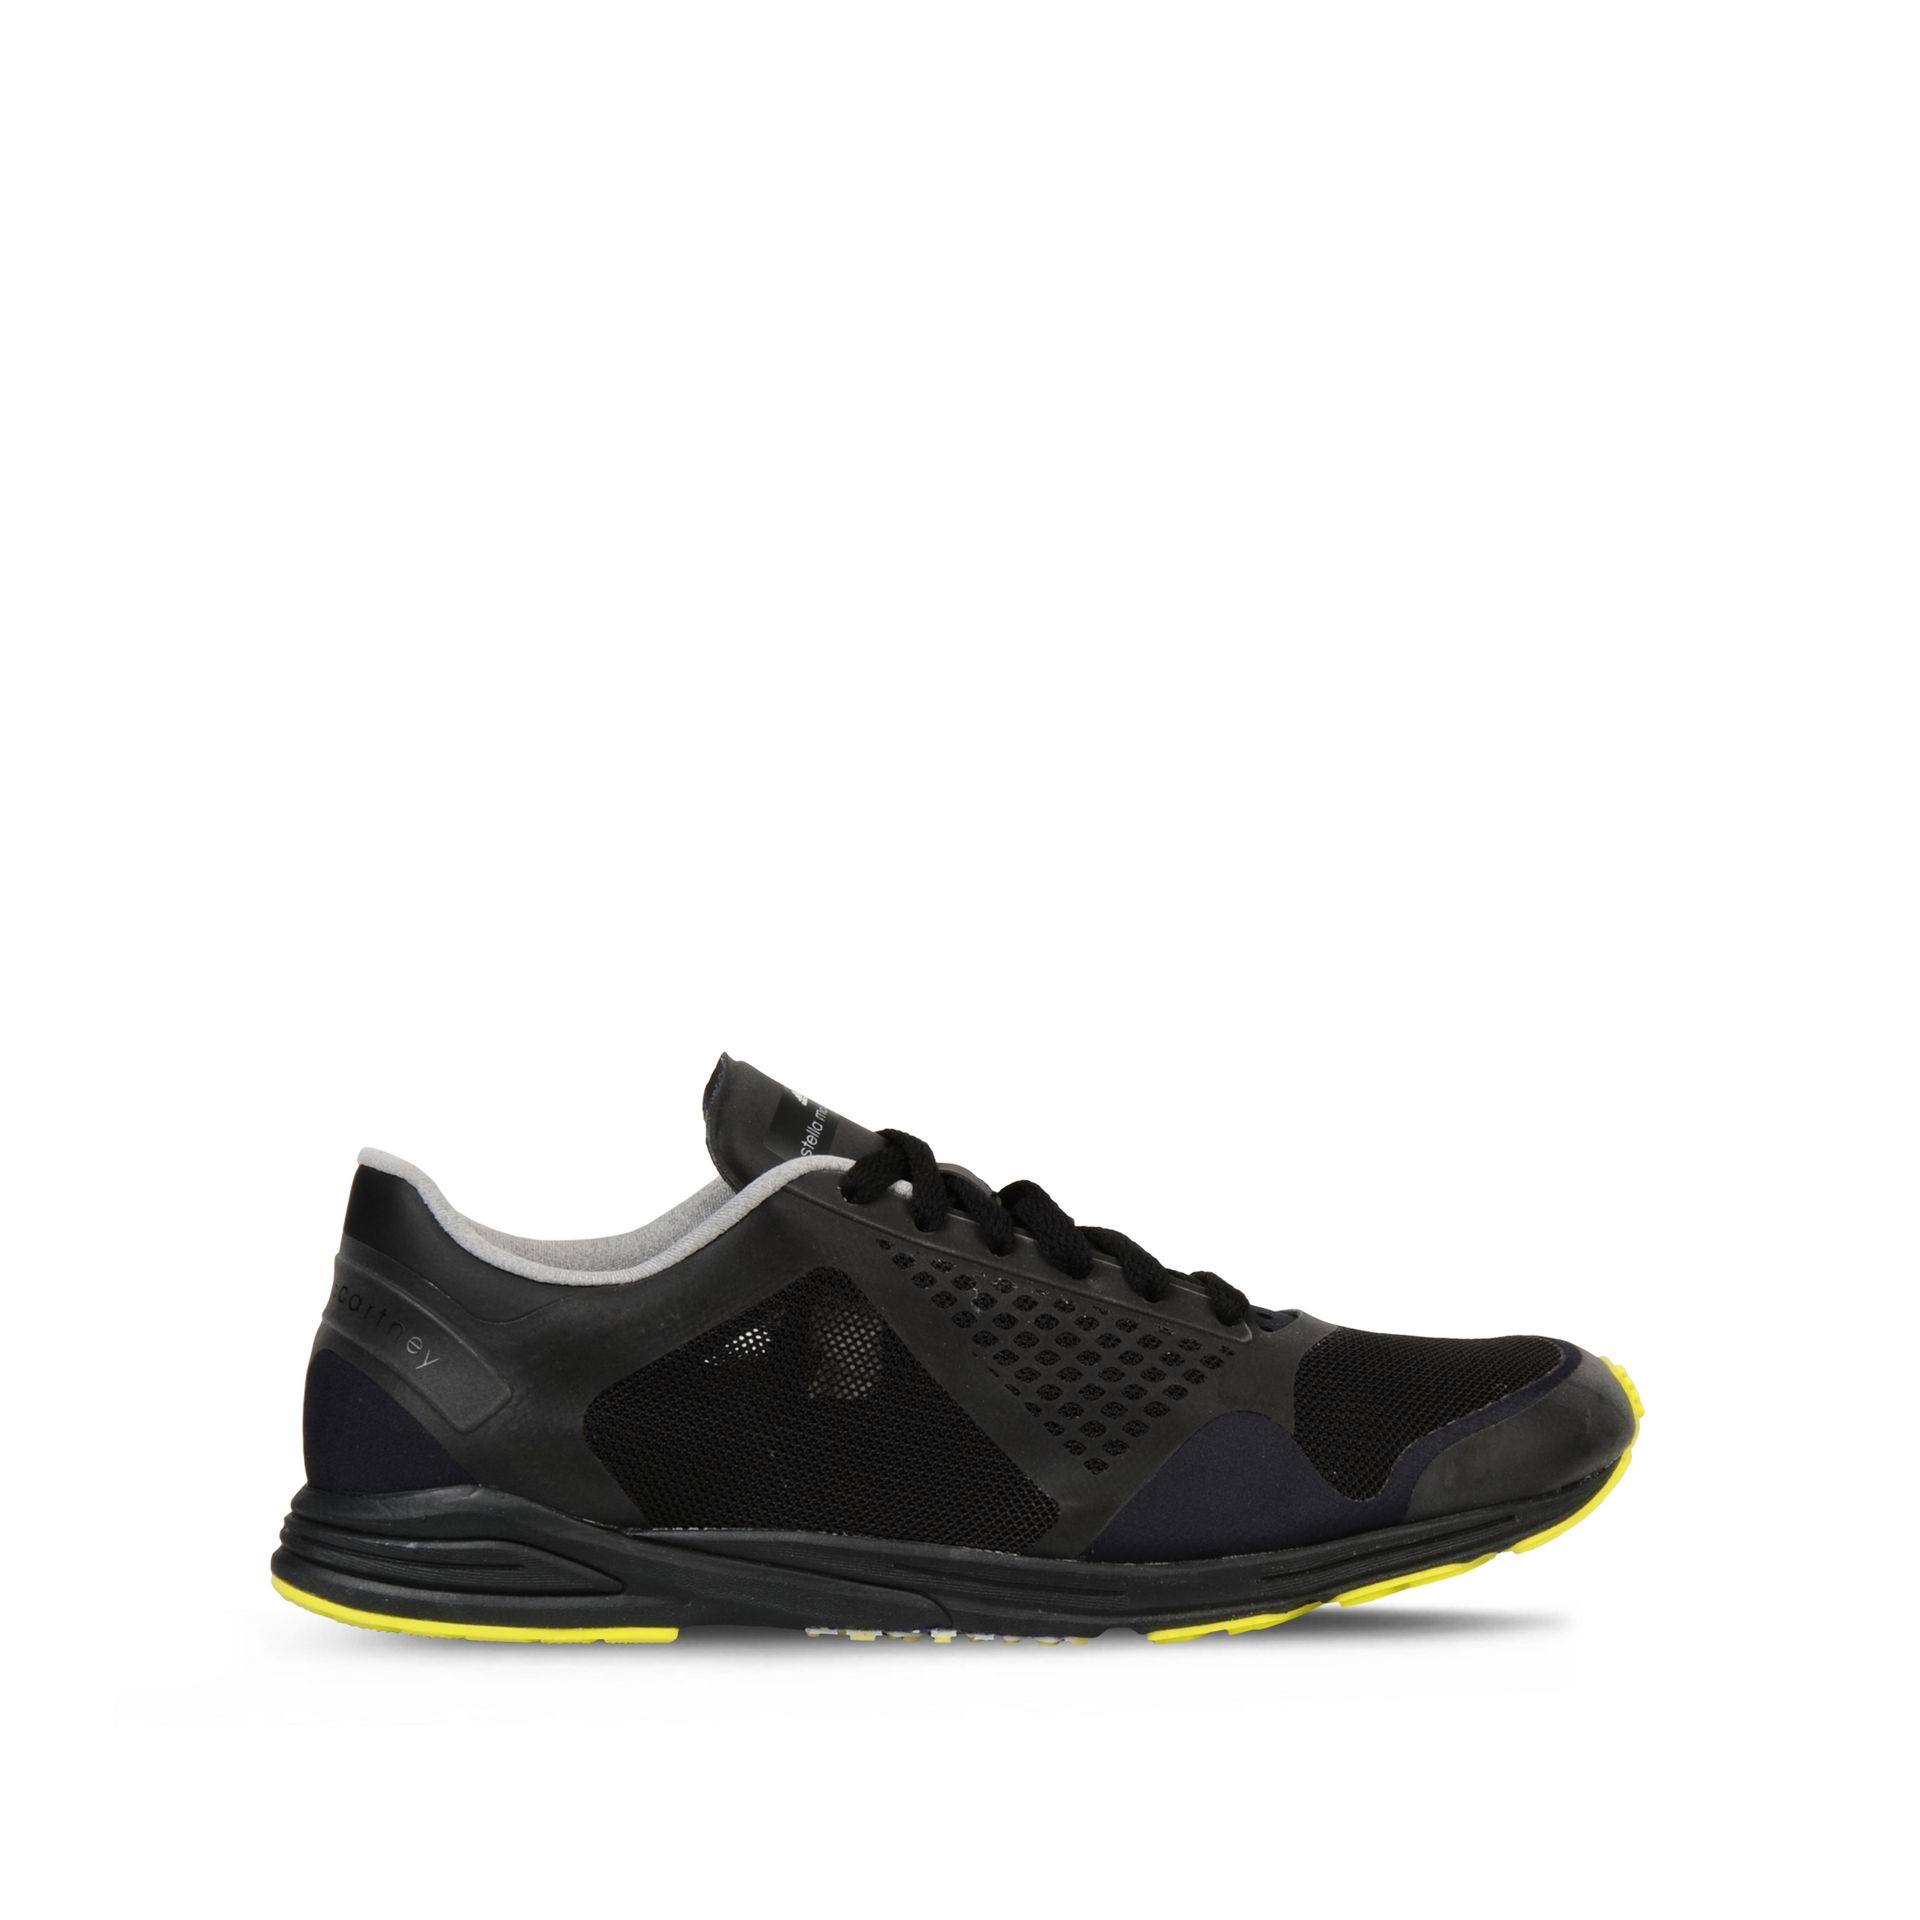 adidas by stella mccartney black adizero racing running shoes in black lyst. Black Bedroom Furniture Sets. Home Design Ideas